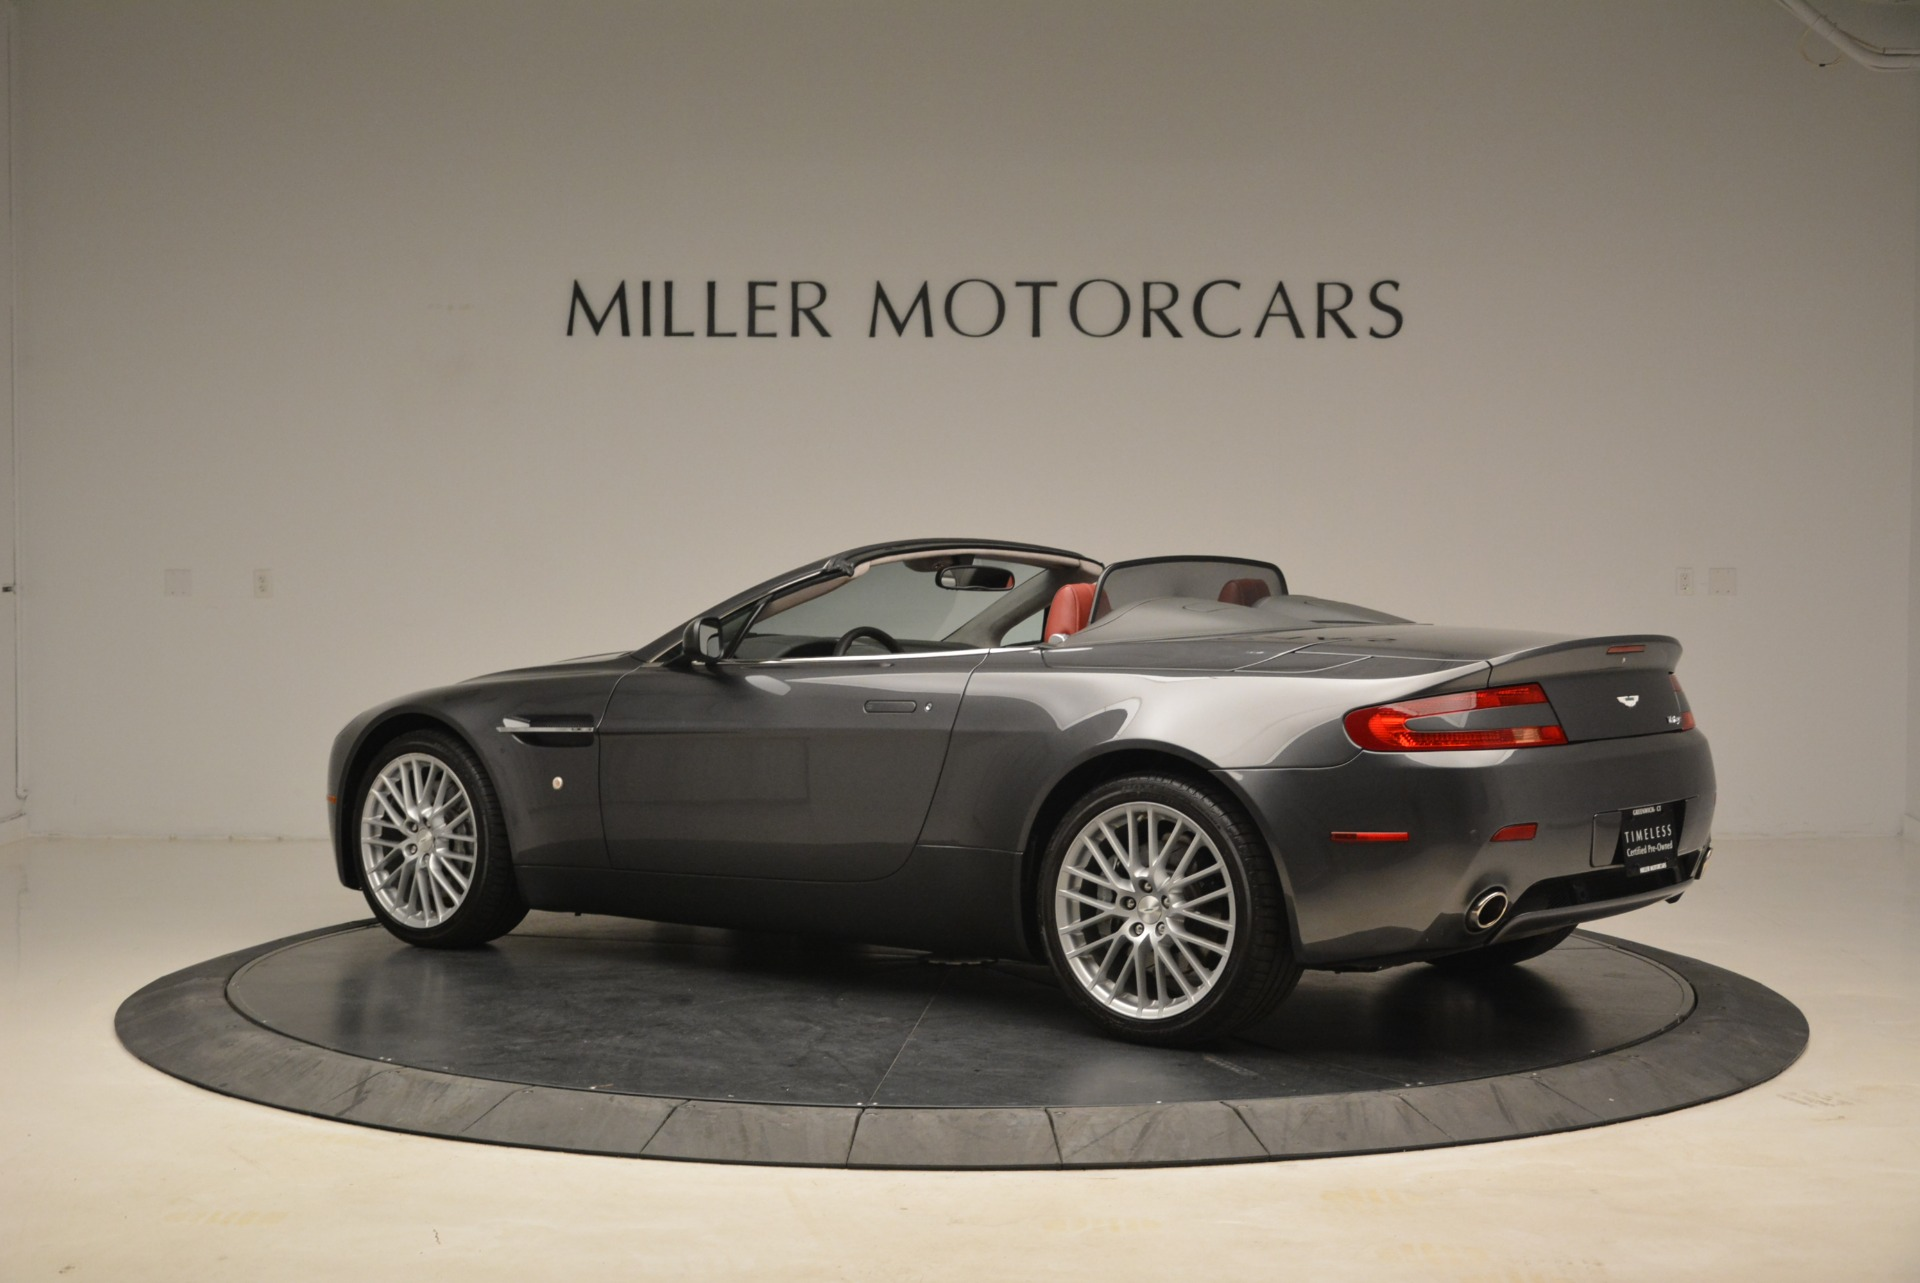 Used 2009 Aston Martin V8 Vantage Roadster For Sale In Greenwich, CT 2123_p4